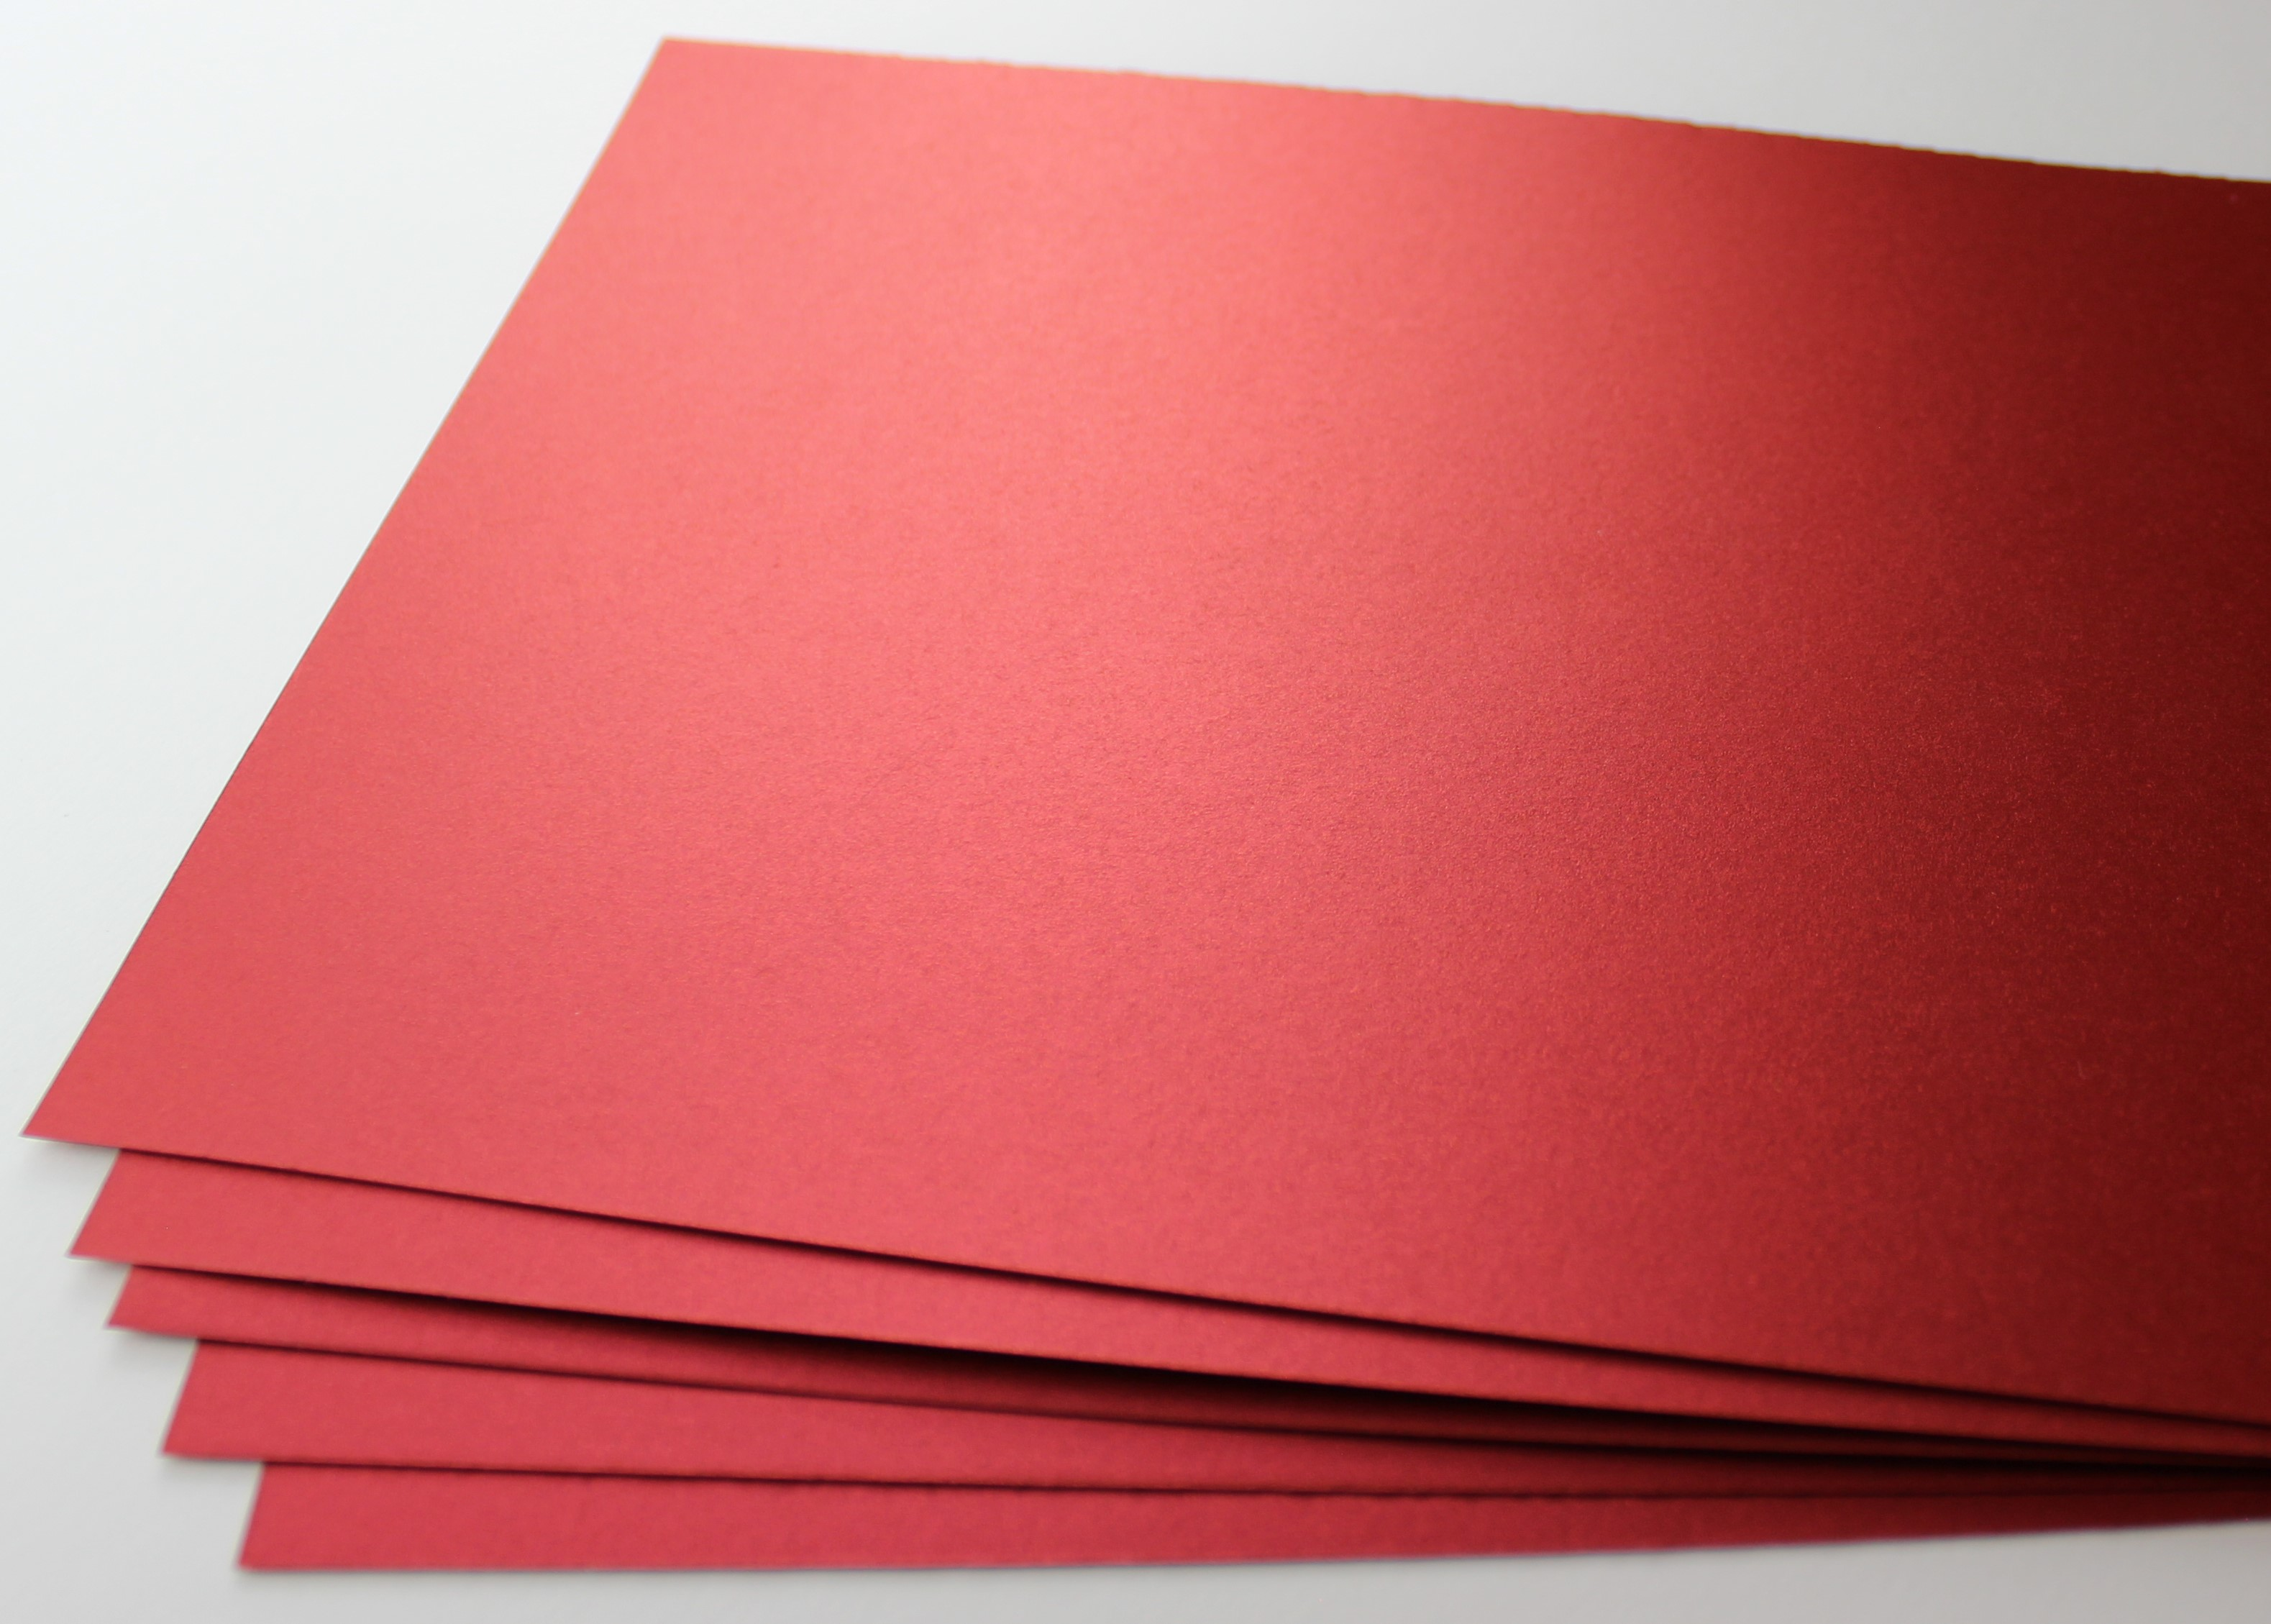 100 Blatt A3 (297x420mm) Inapa Shyne Papier 120 g/qm red diamond